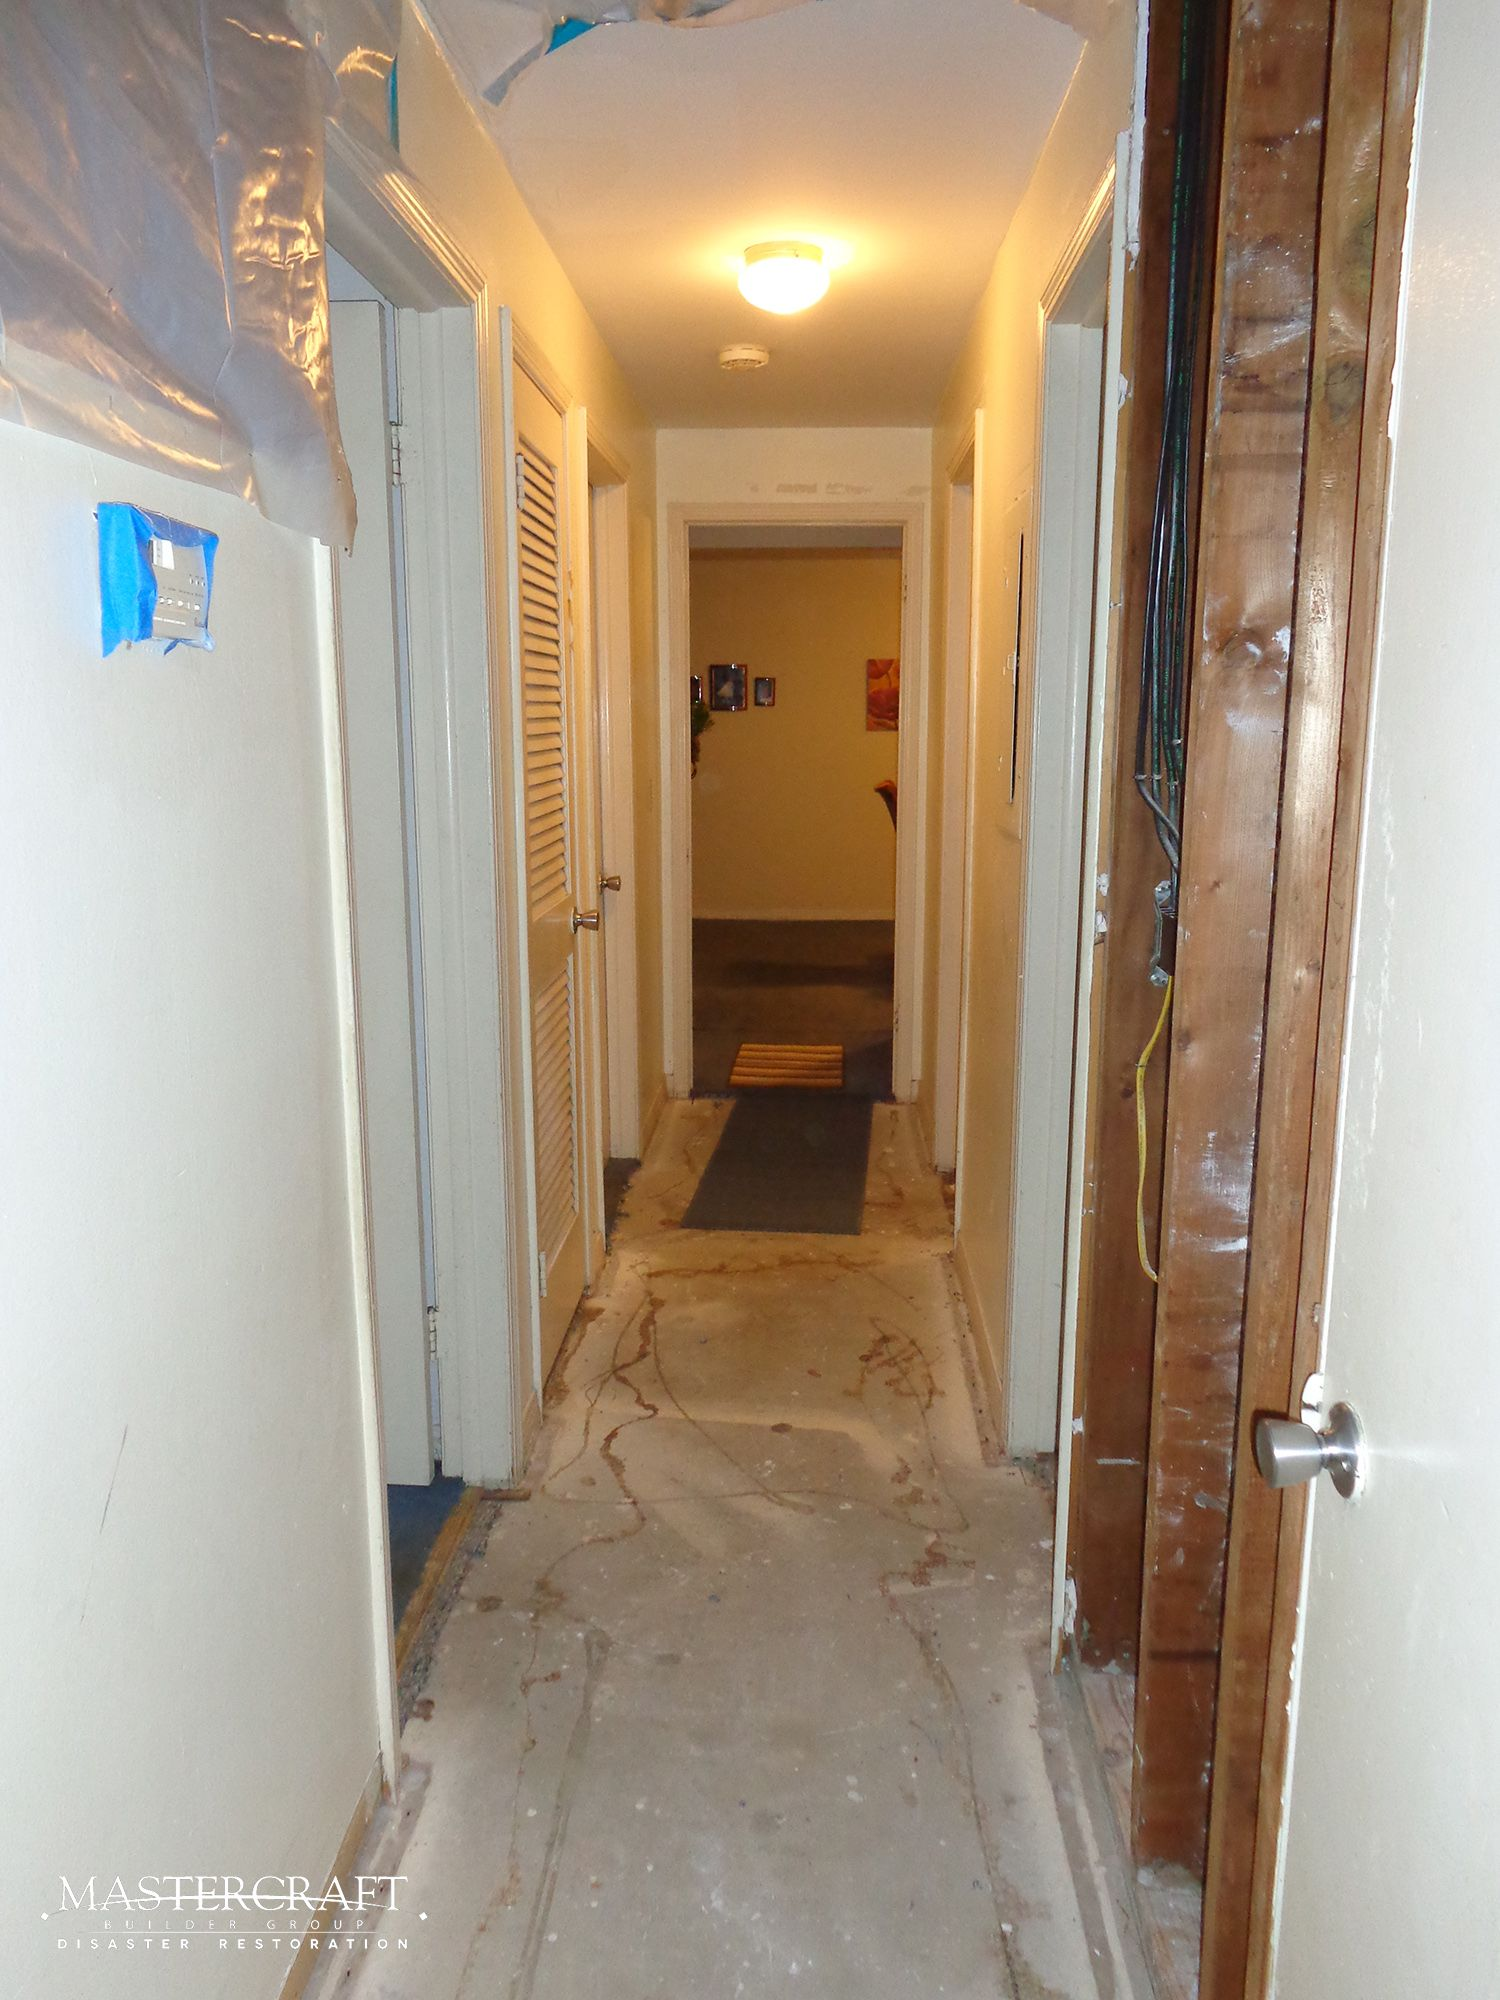 The Hallway Before Reconstruction The Hot Water Heater In The Attic Above The Hallway Burst Causing Waterdamage M Hot Water Heater Water Damage Water Heater